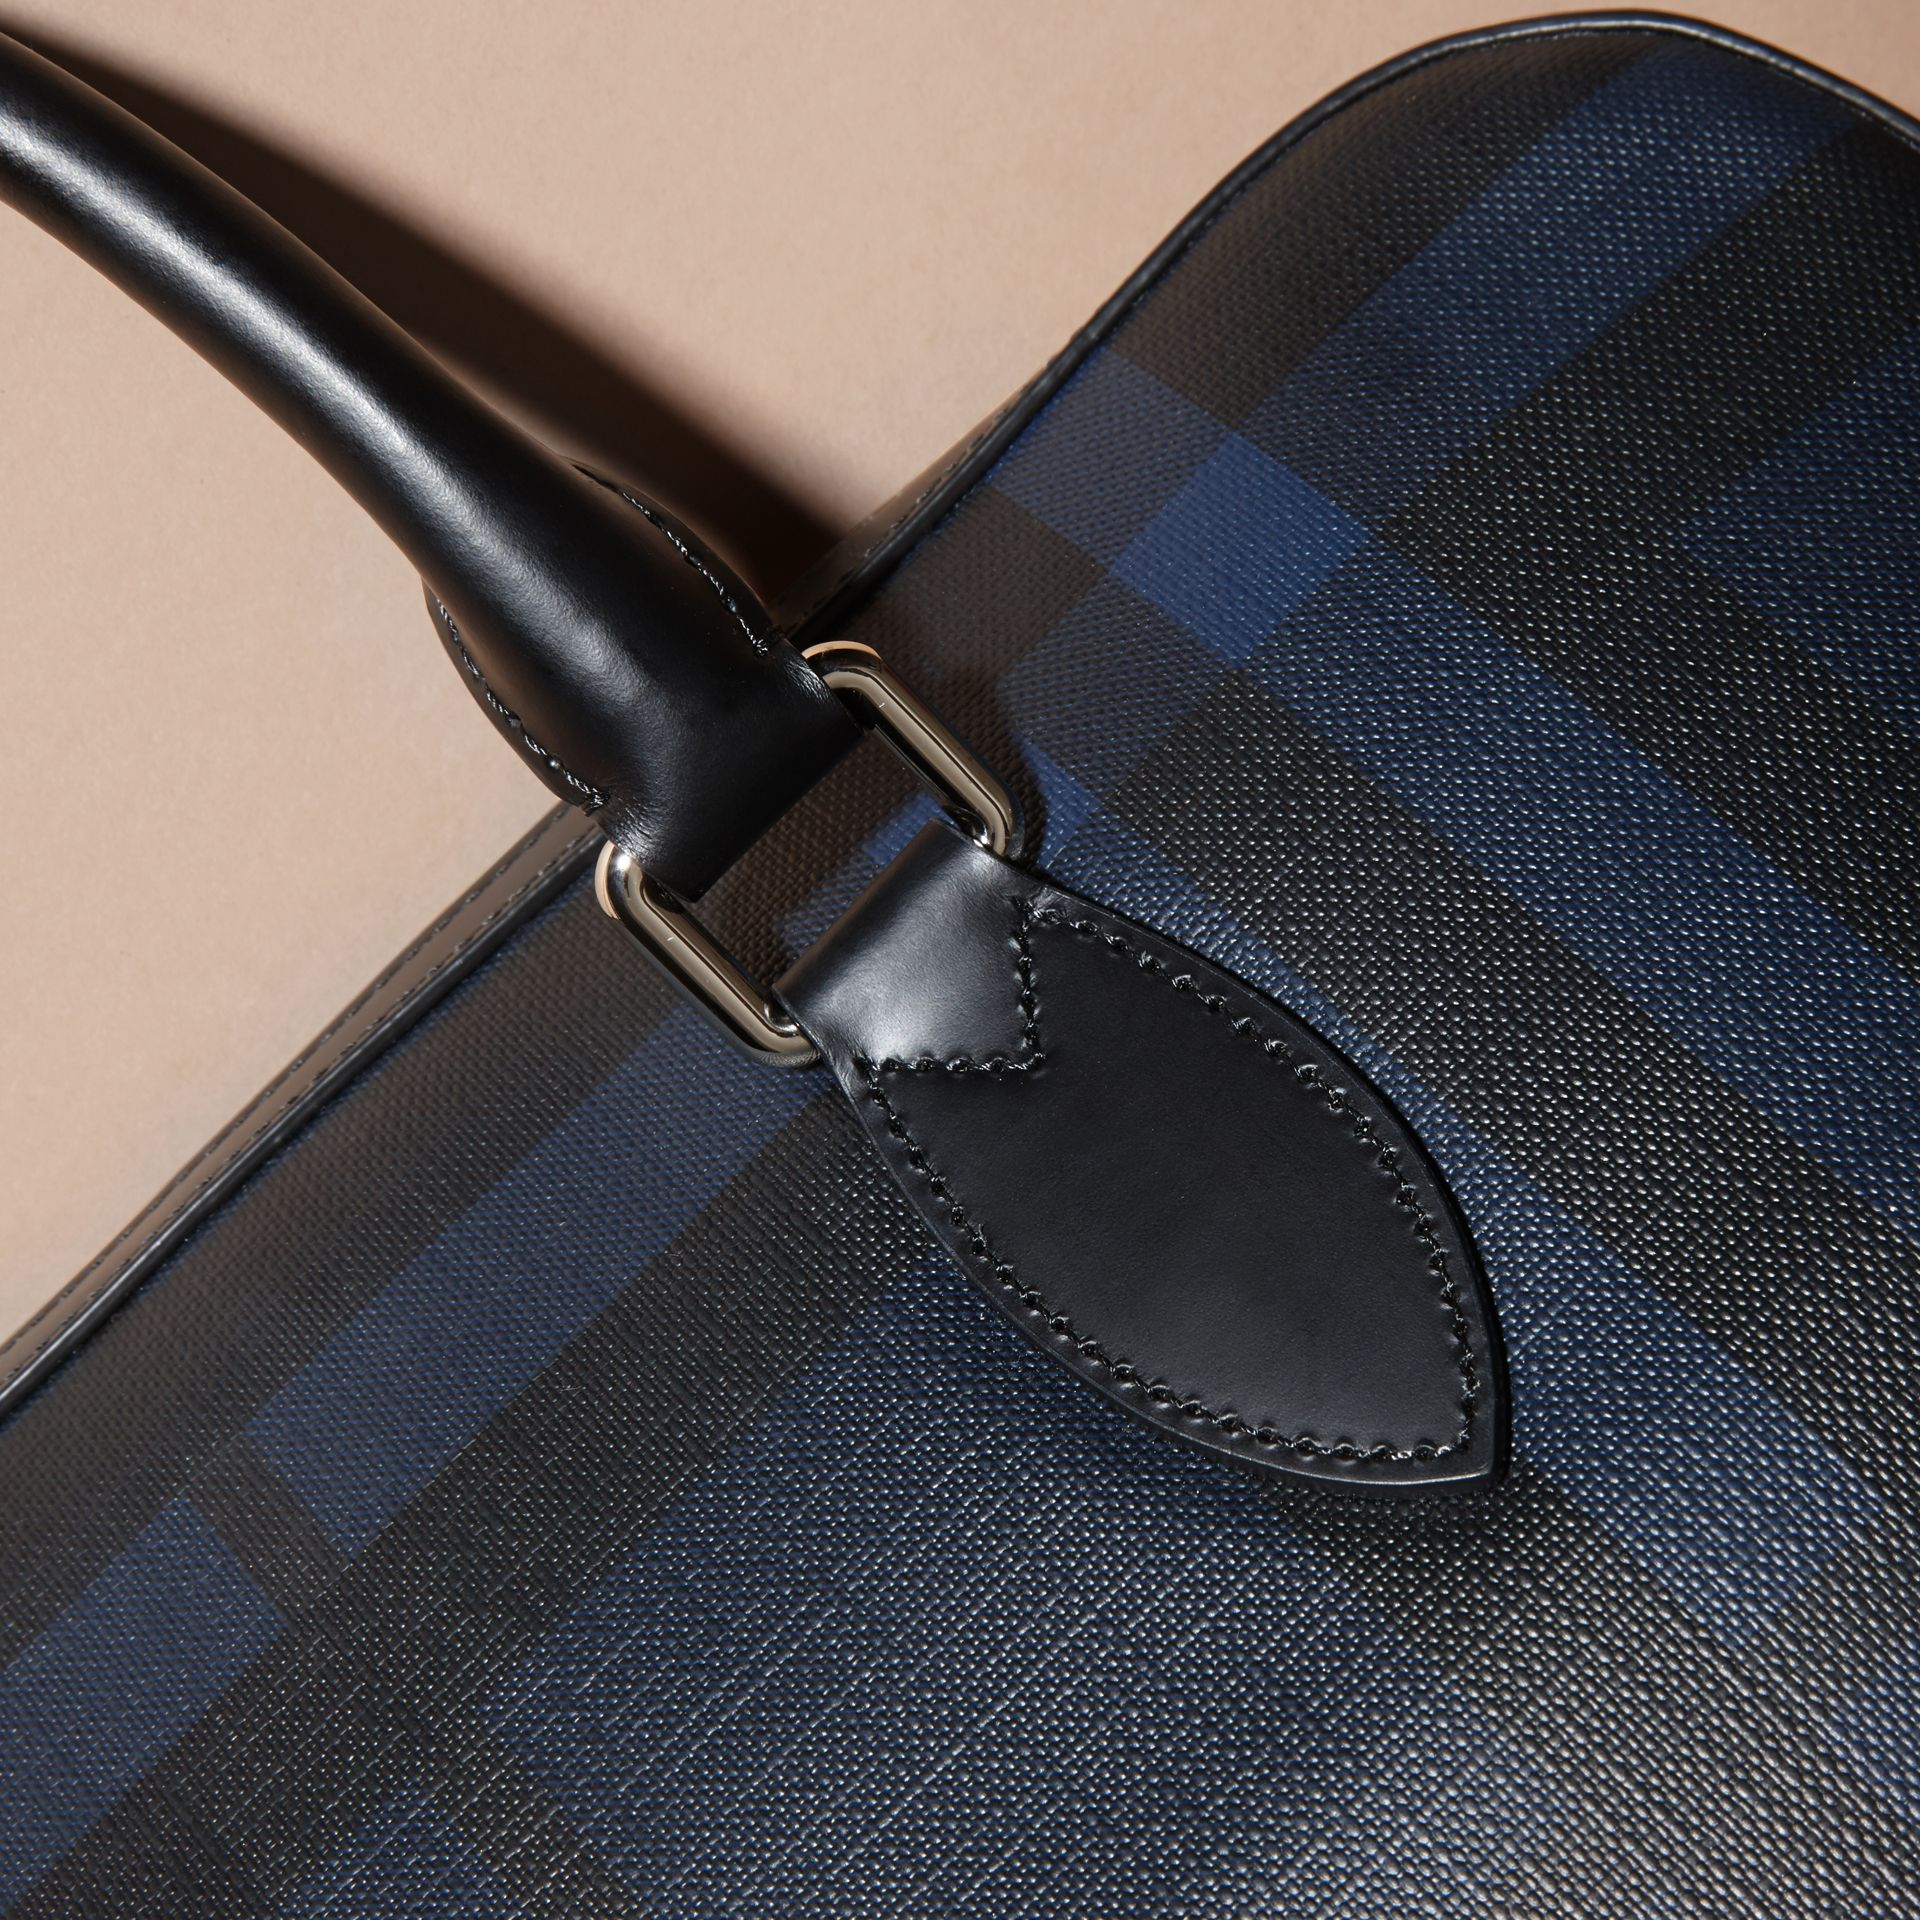 Sac The Barrow fin avec motif London check (Marine/noir) - Homme | Burberry - photo de la galerie 2